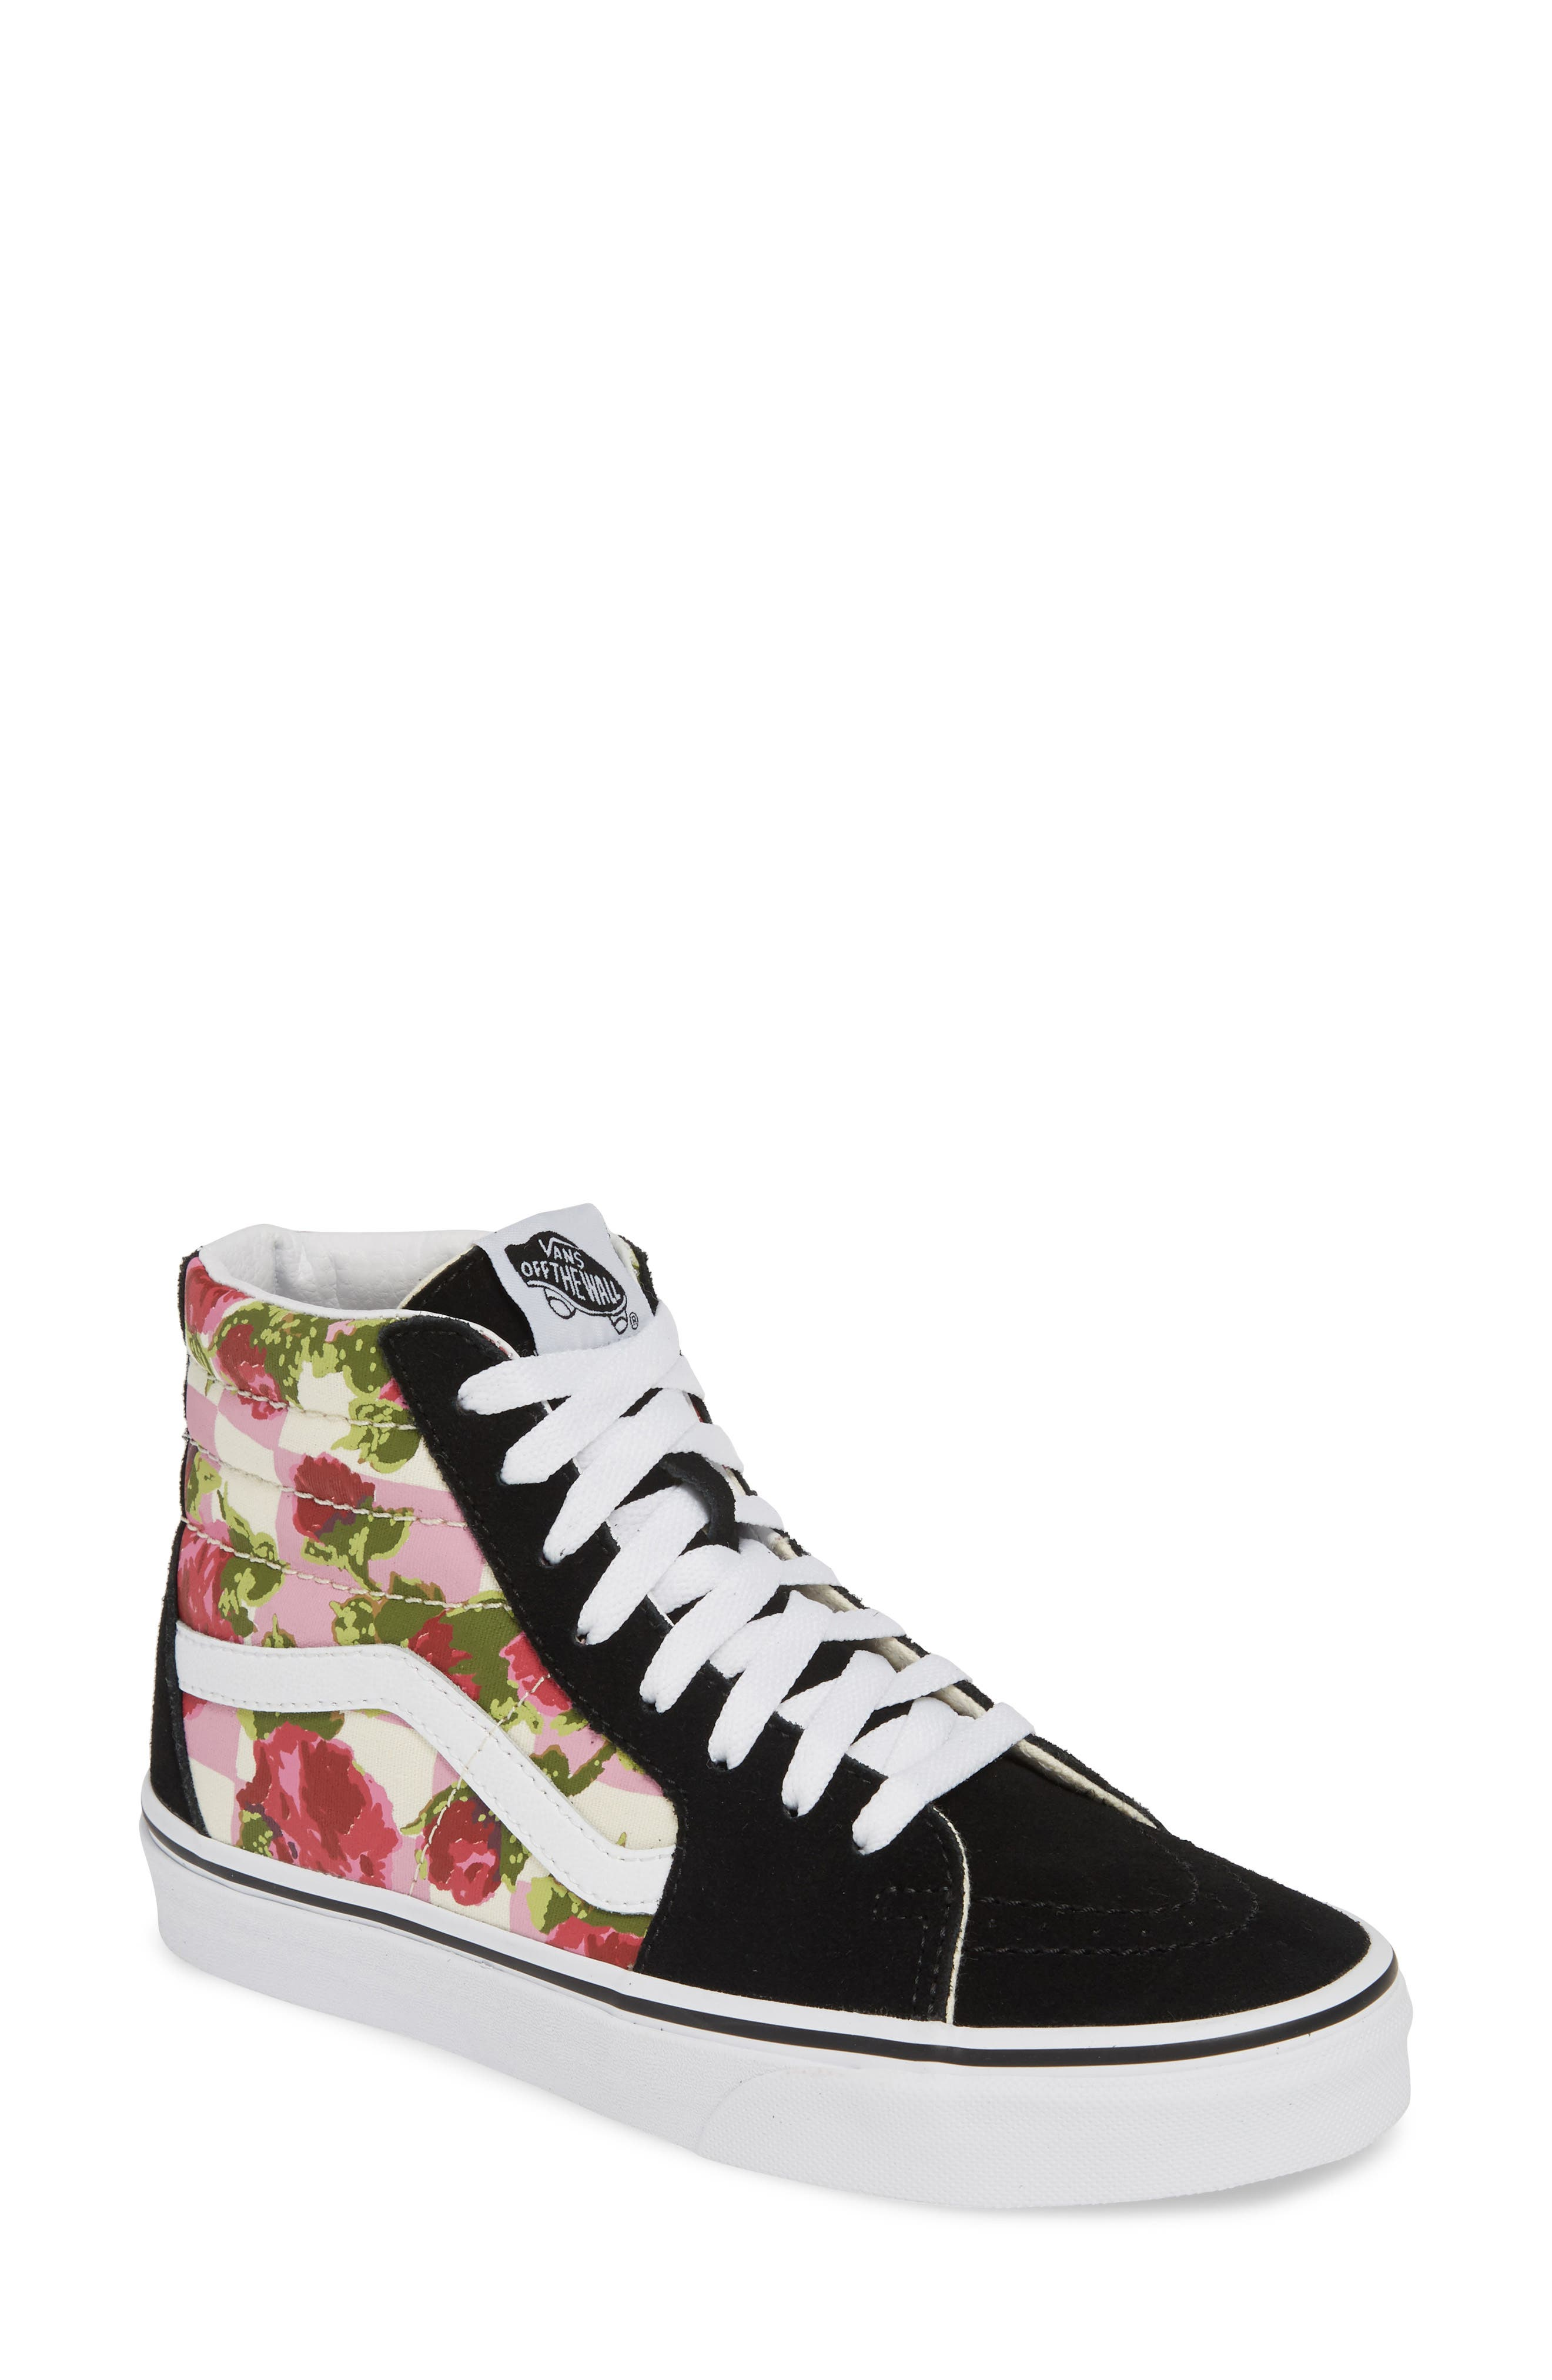 8bad10d40a Vans High Tops  High-Top Sneakers for Women